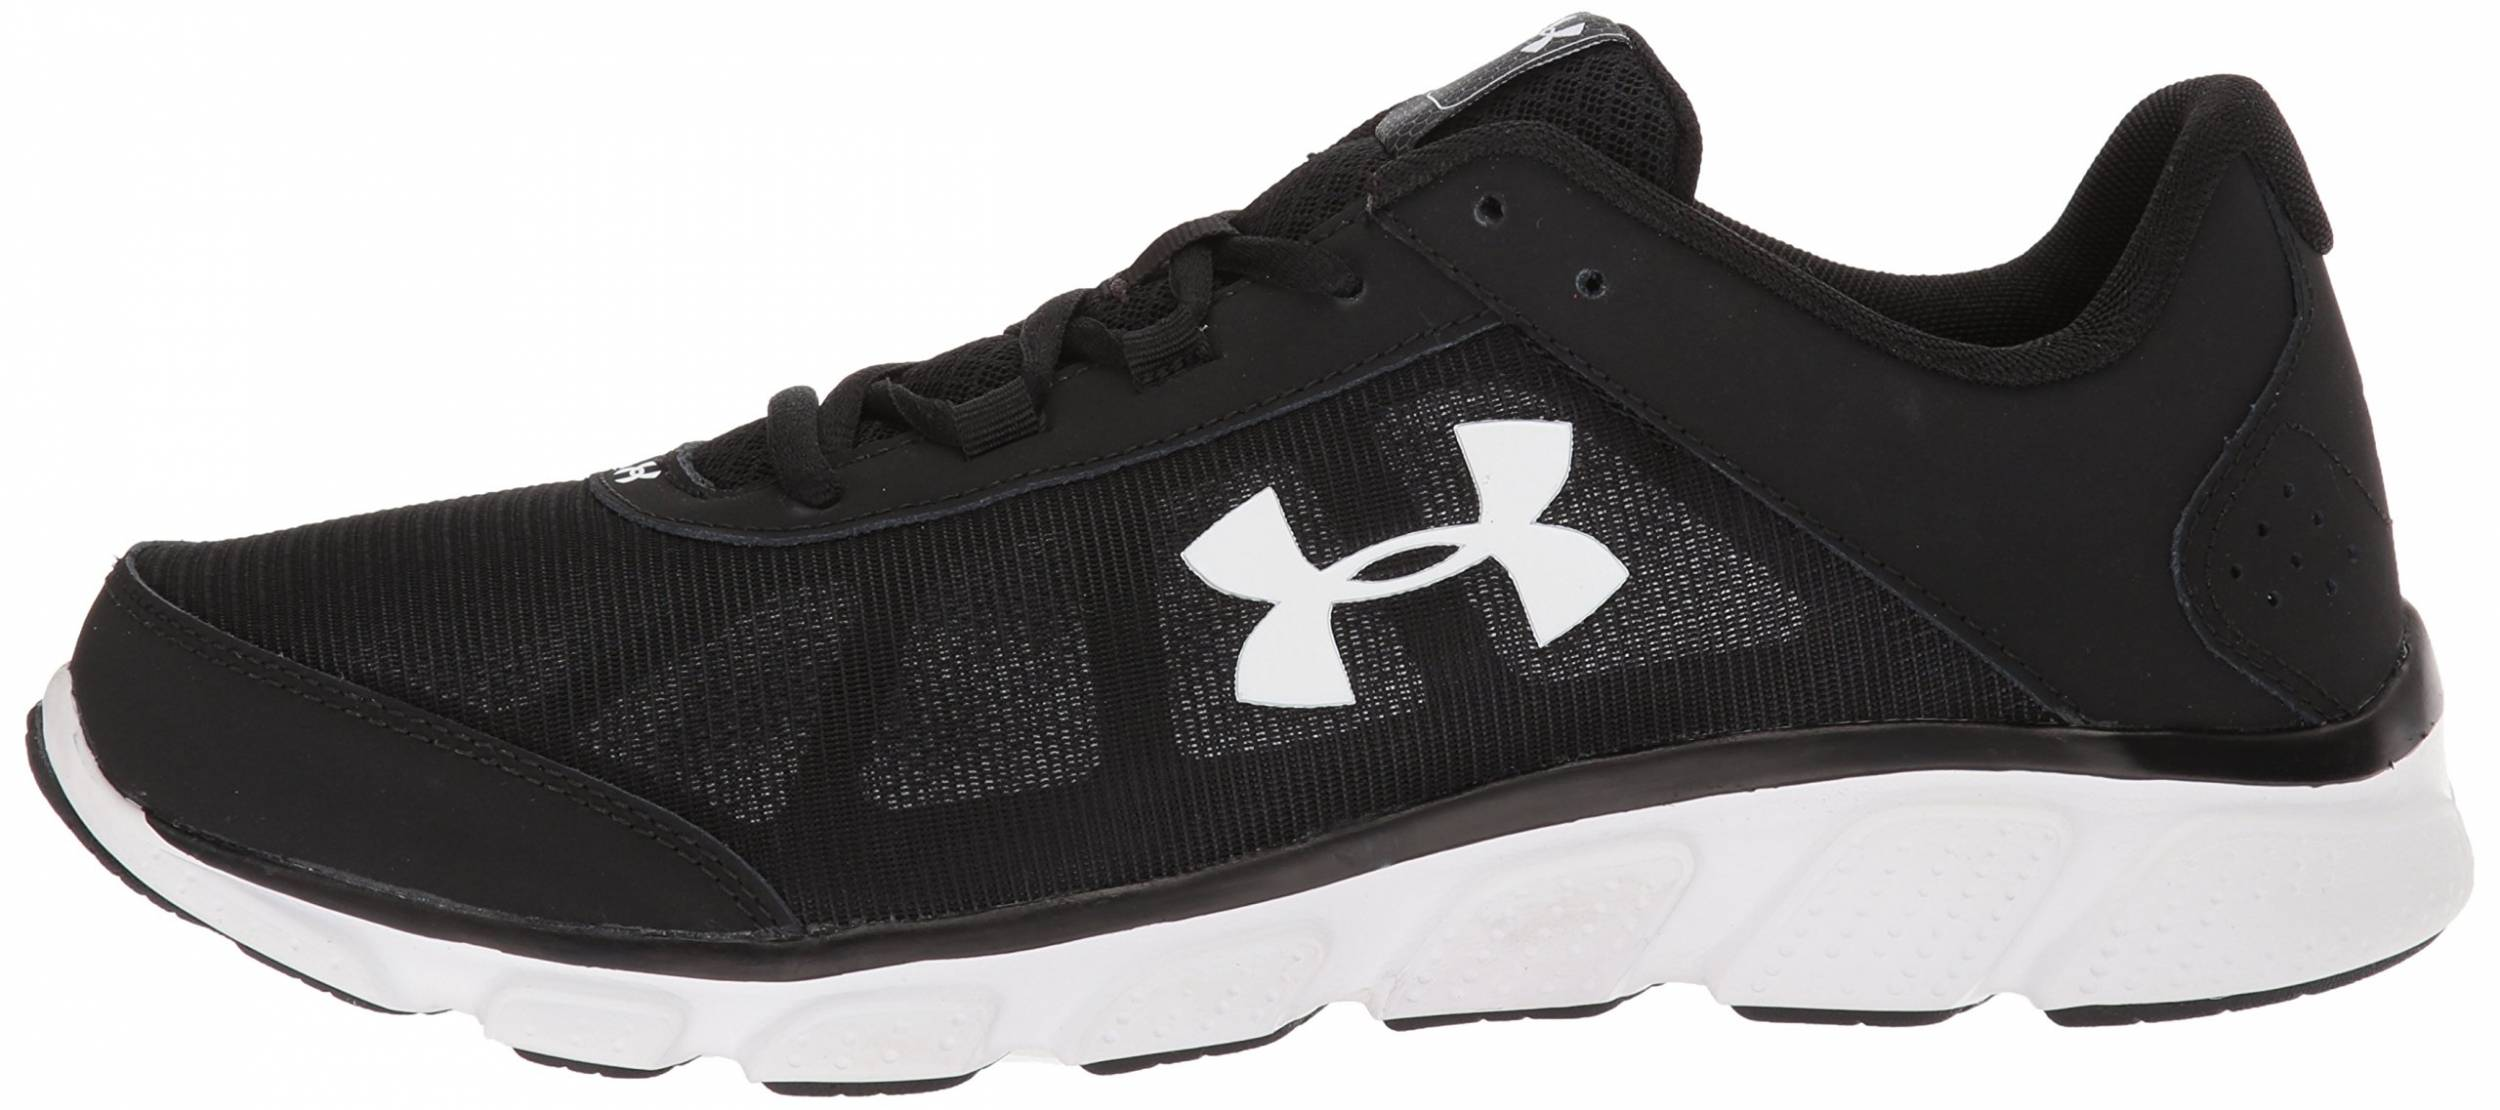 Review of Under Armour Micro G Assert 7